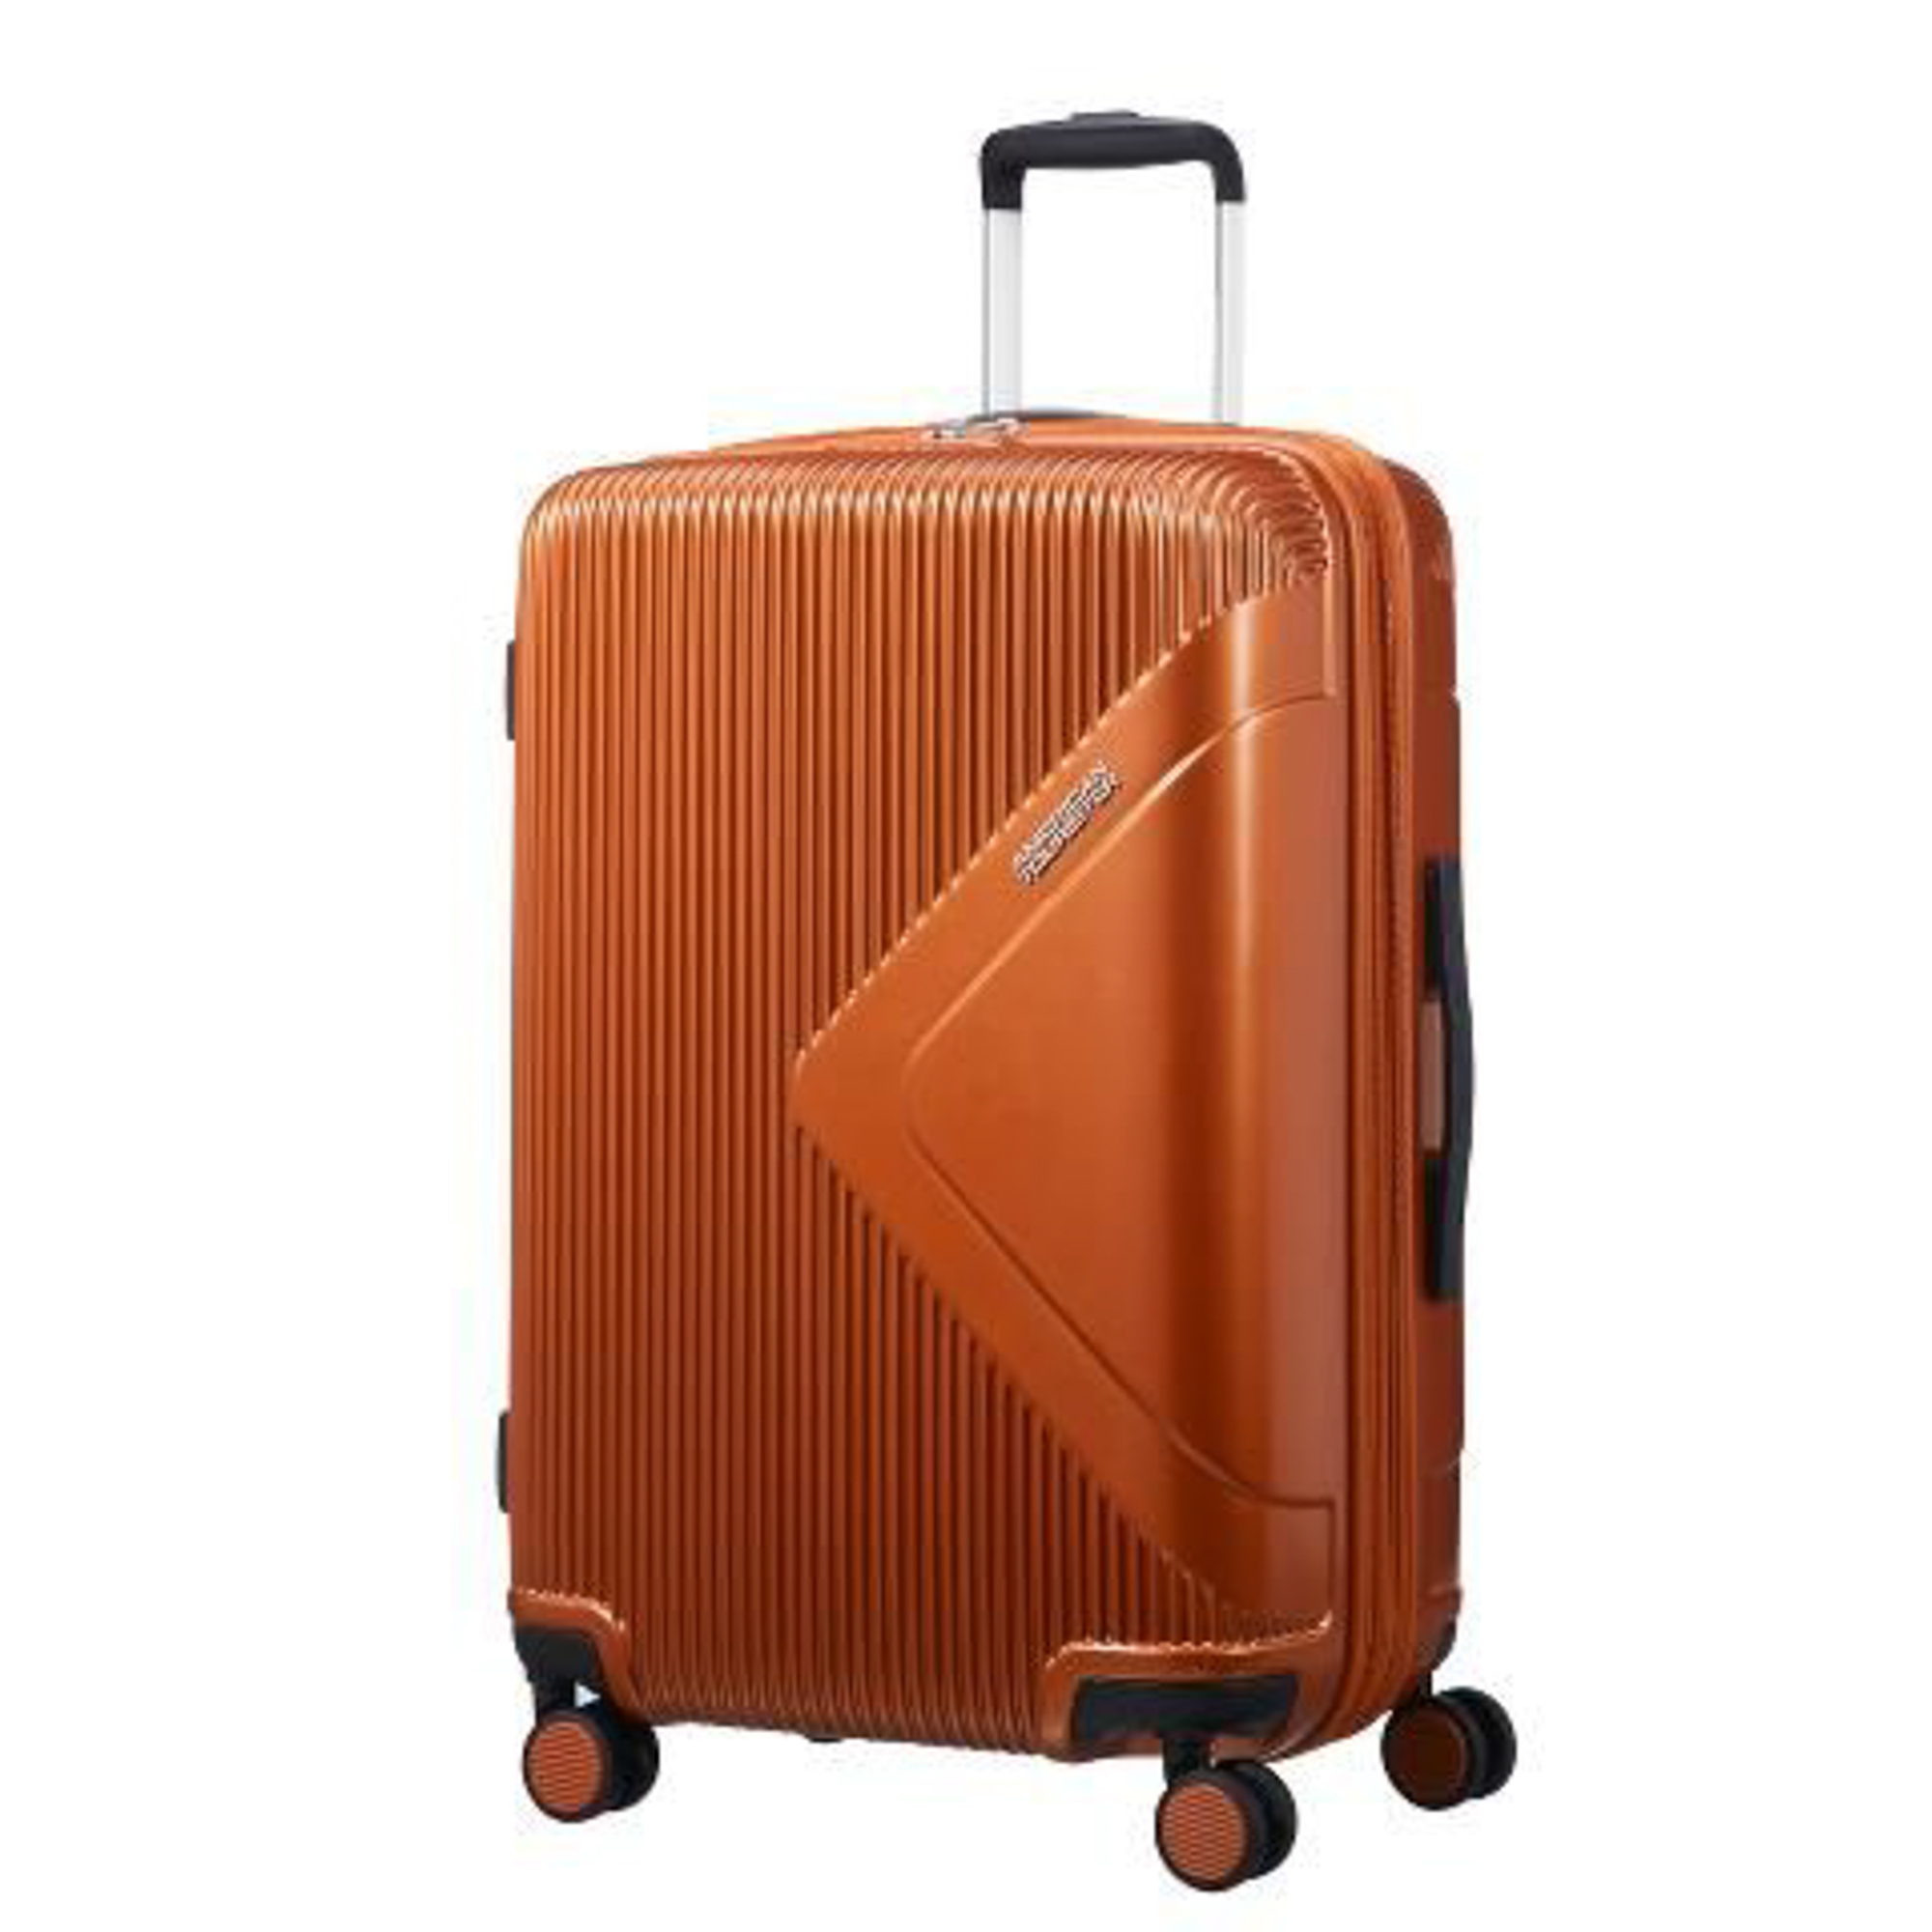 Чемодан American Tourister Modern dream медный M